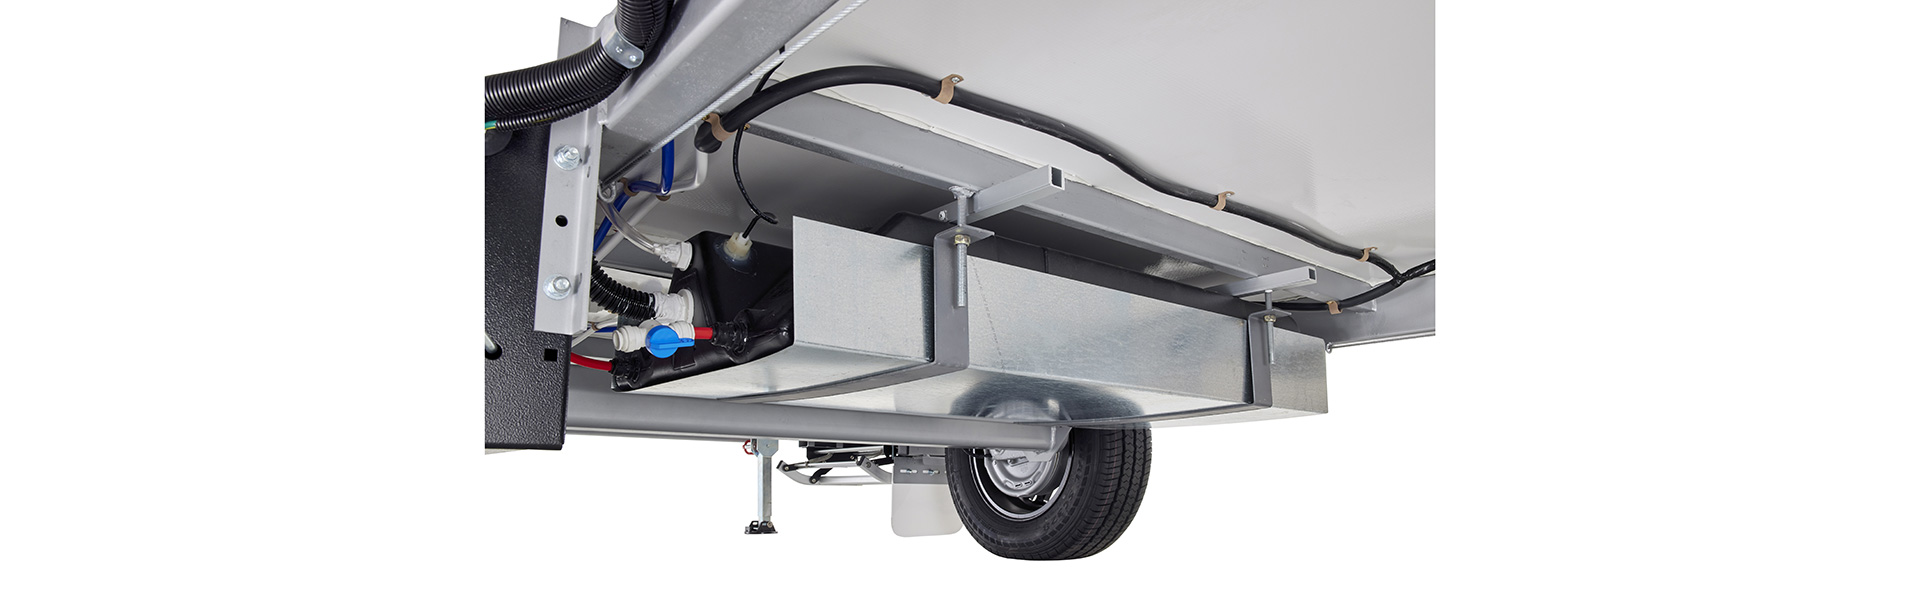 Independent torsion beam suspension keeps your van planted firmly on the road. A 65 Ltr water tank for your toilet & shower.